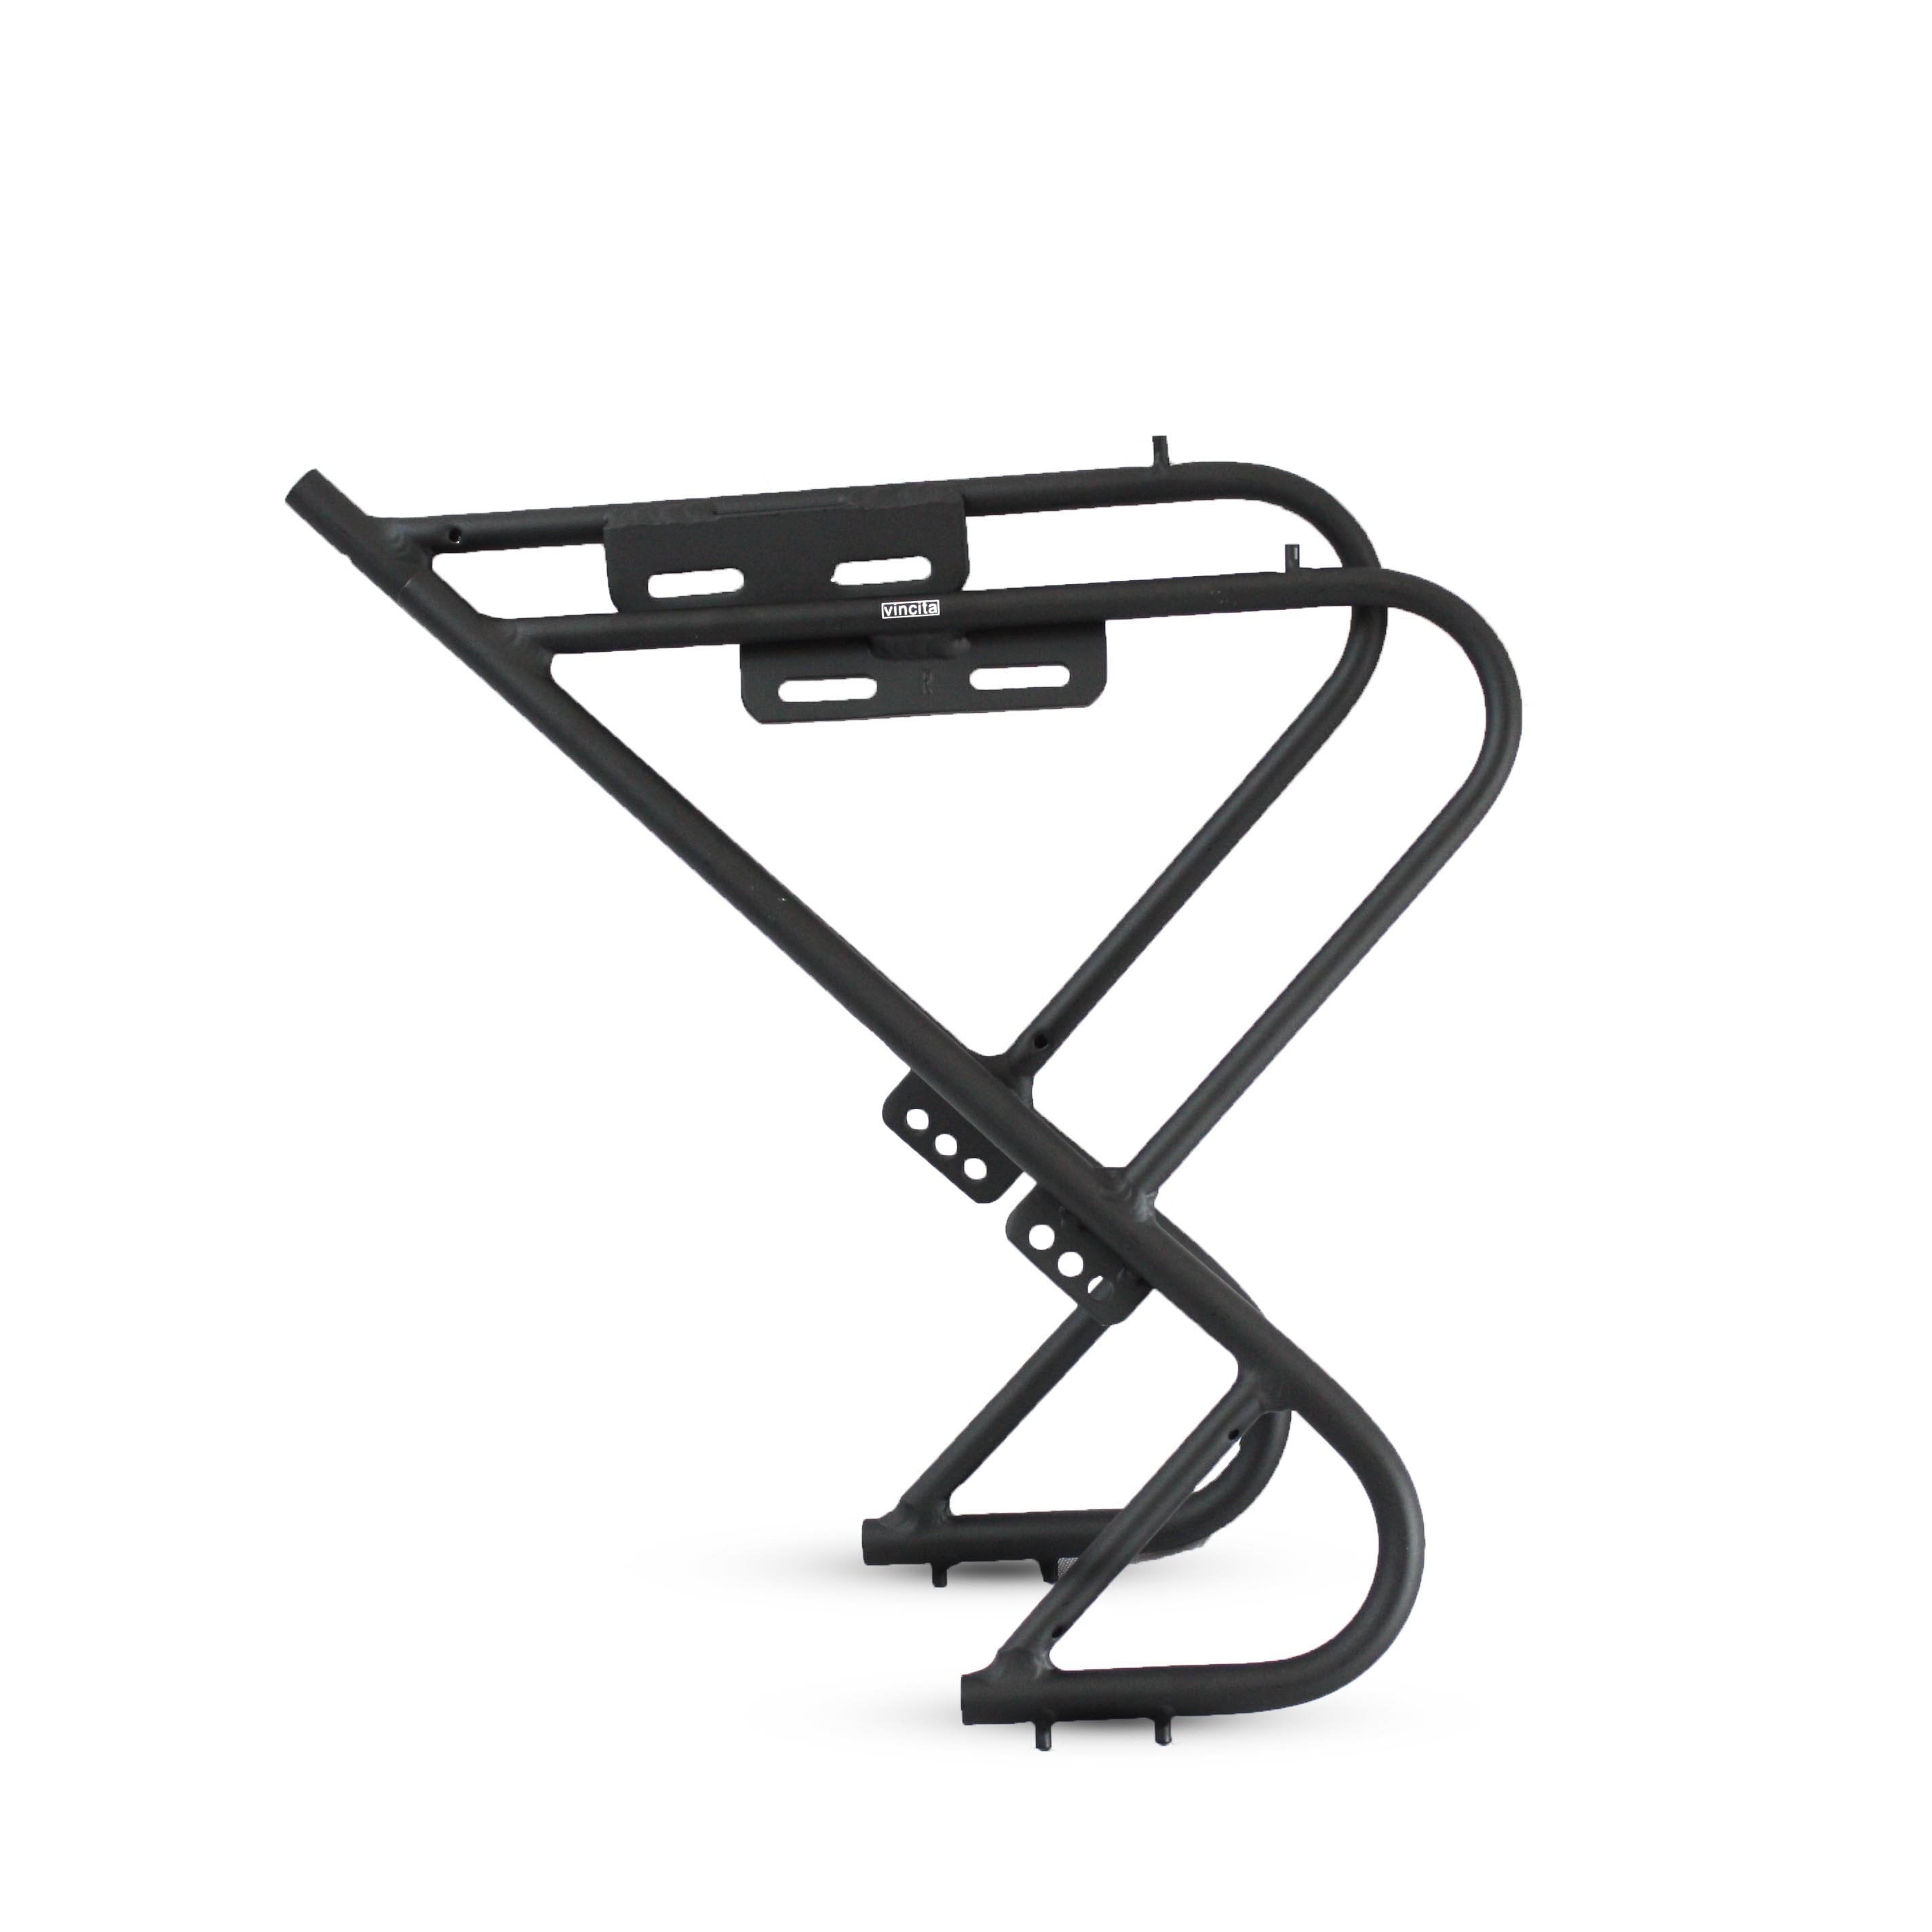 Vincita Co., Ltd. Black / th C013 Low rider bike carrier